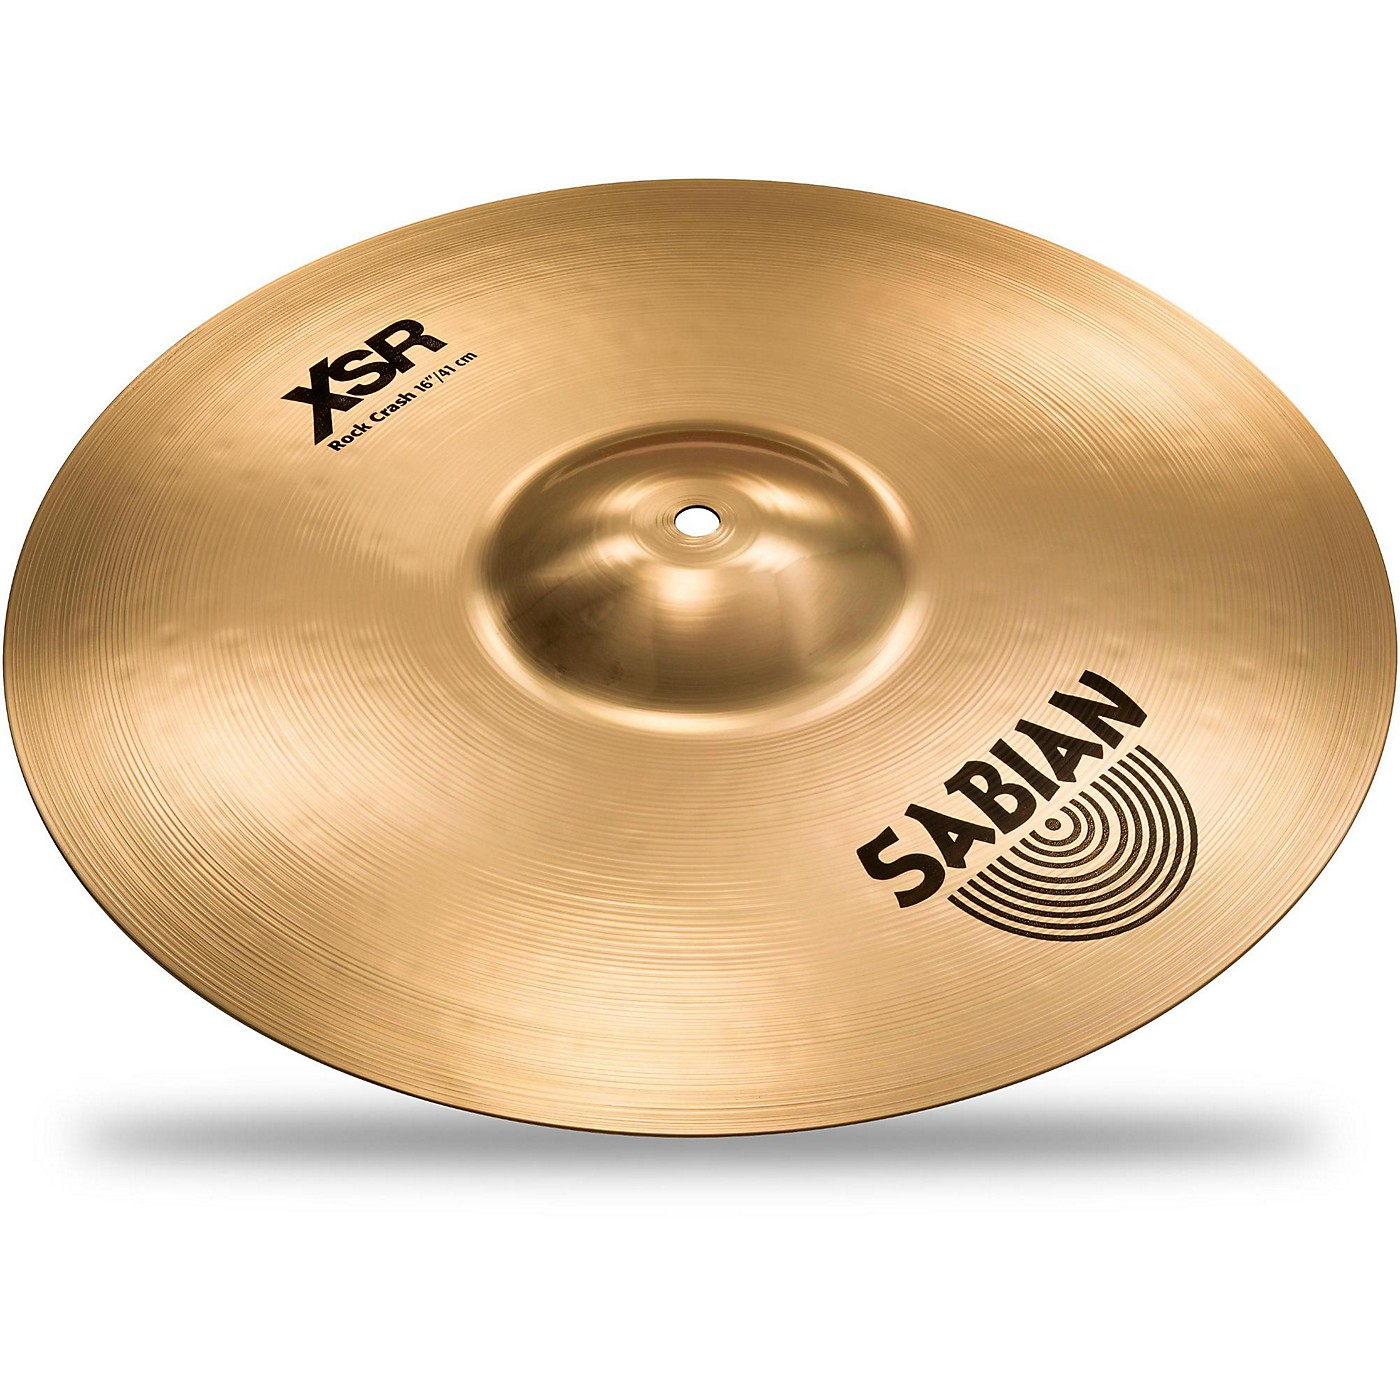 Sabian XSR Series Rock Crash Cymbal thumbnail